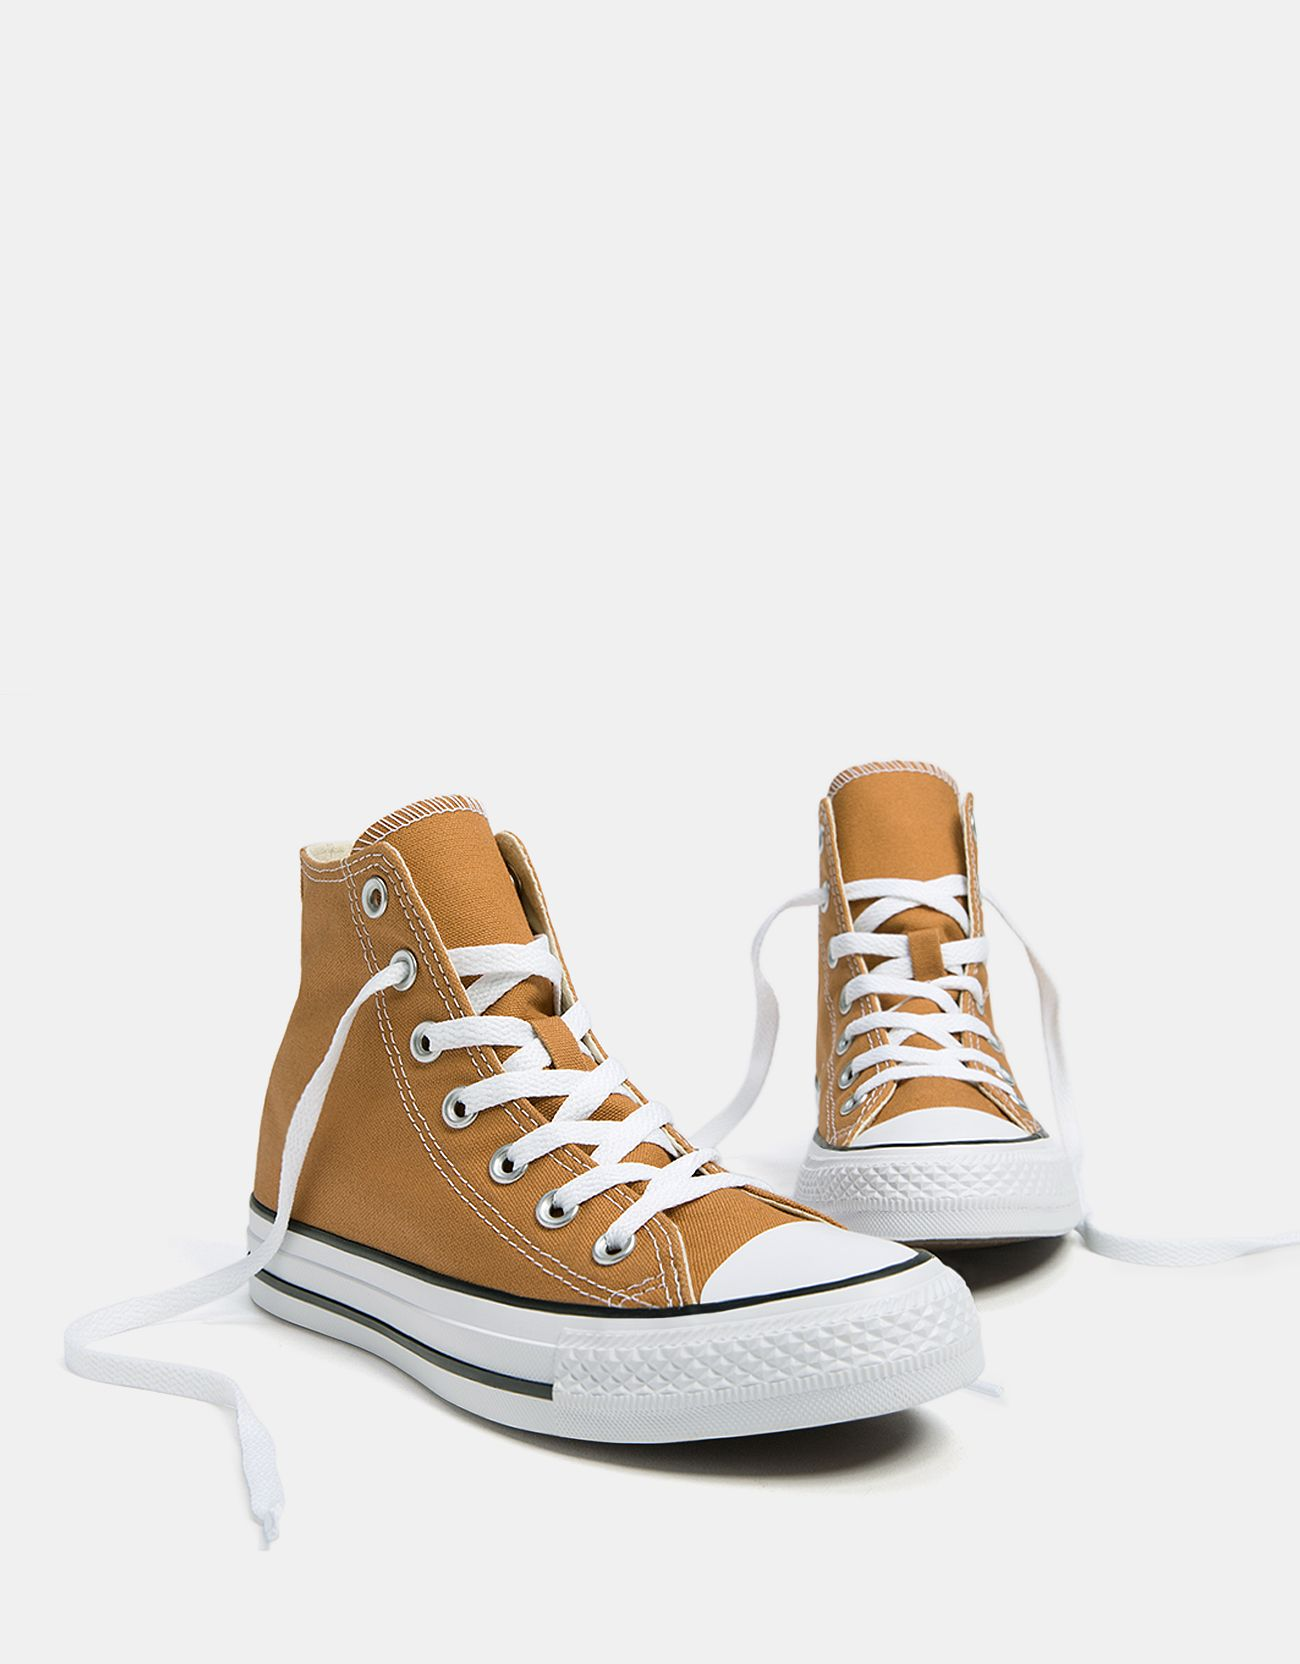 CONVERSE ALL STAR high top canvas sneakers.  Converse  Bershka  mustard b0f07eeca